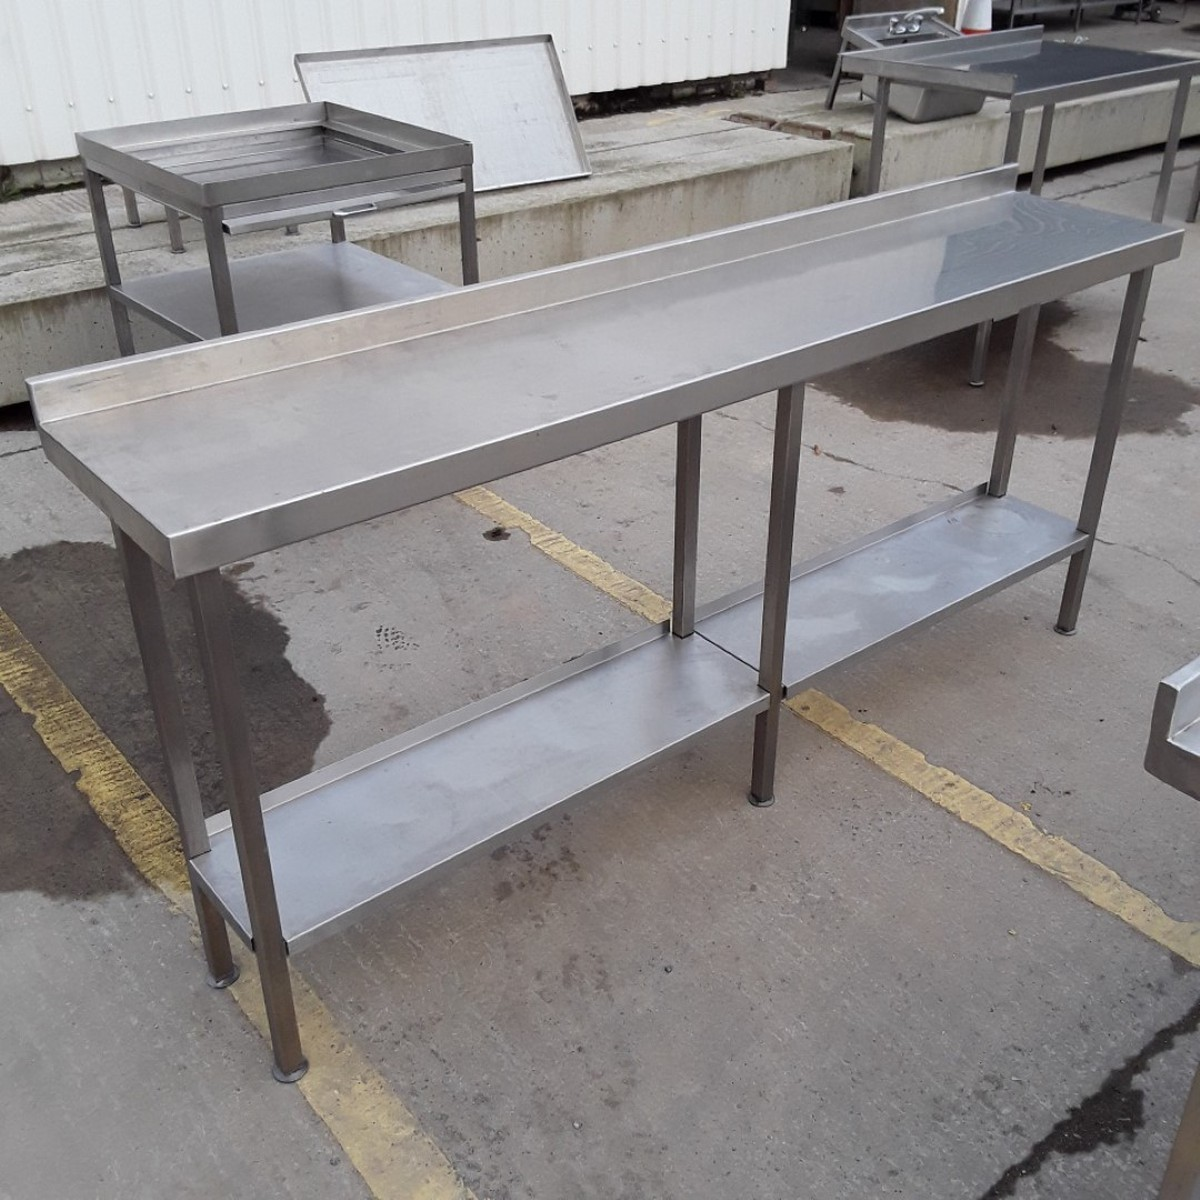 secondhand catering equipment stainless steel tables 1. Black Bedroom Furniture Sets. Home Design Ideas